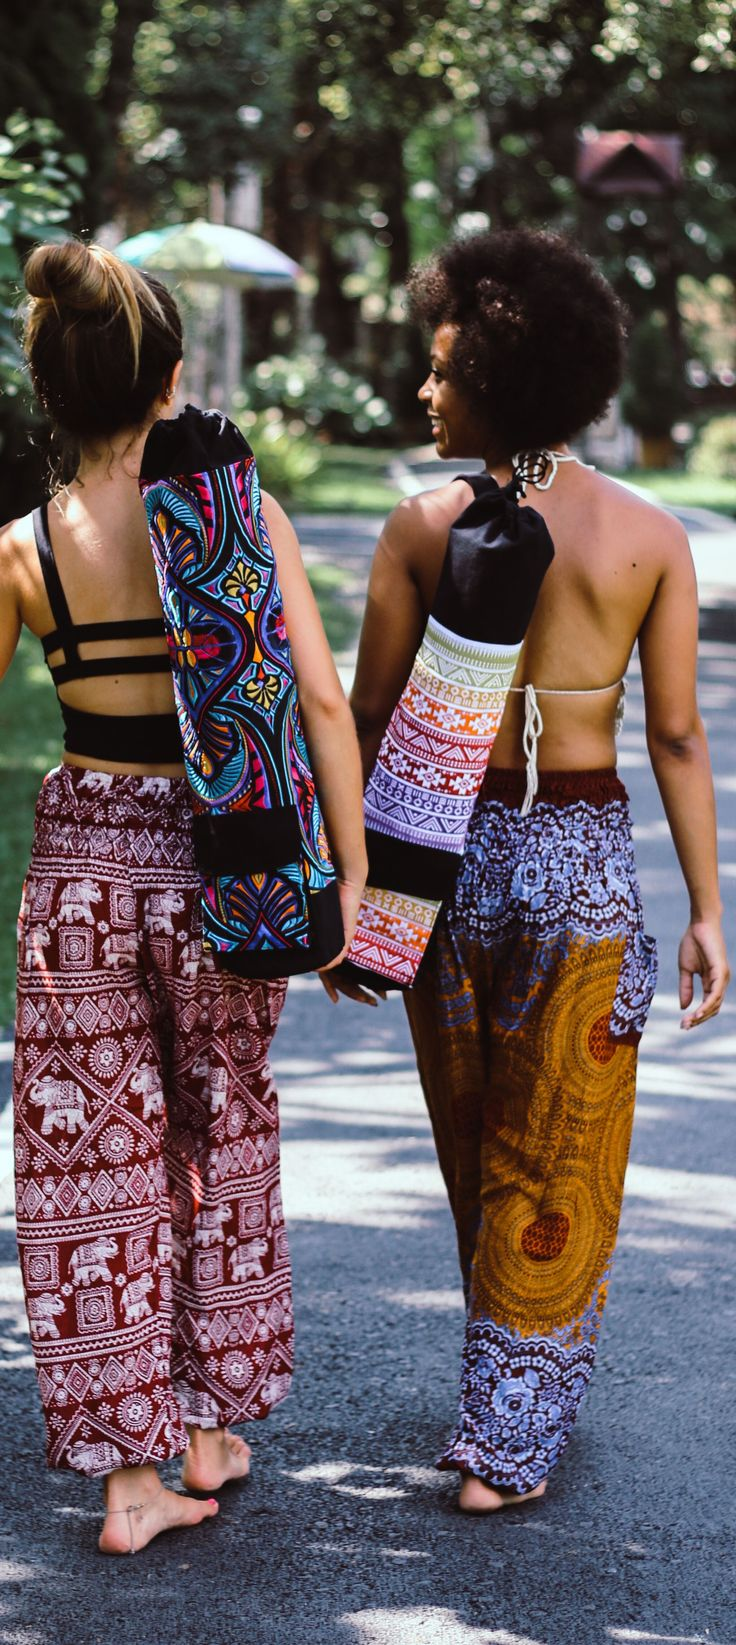 A beautiful new way to carry your yoga mat everywhere you go! Check out all new Yoga mat straps and yoga mat bags at - https://www.onetribeapparel.com/collections/yoga-mat-bags